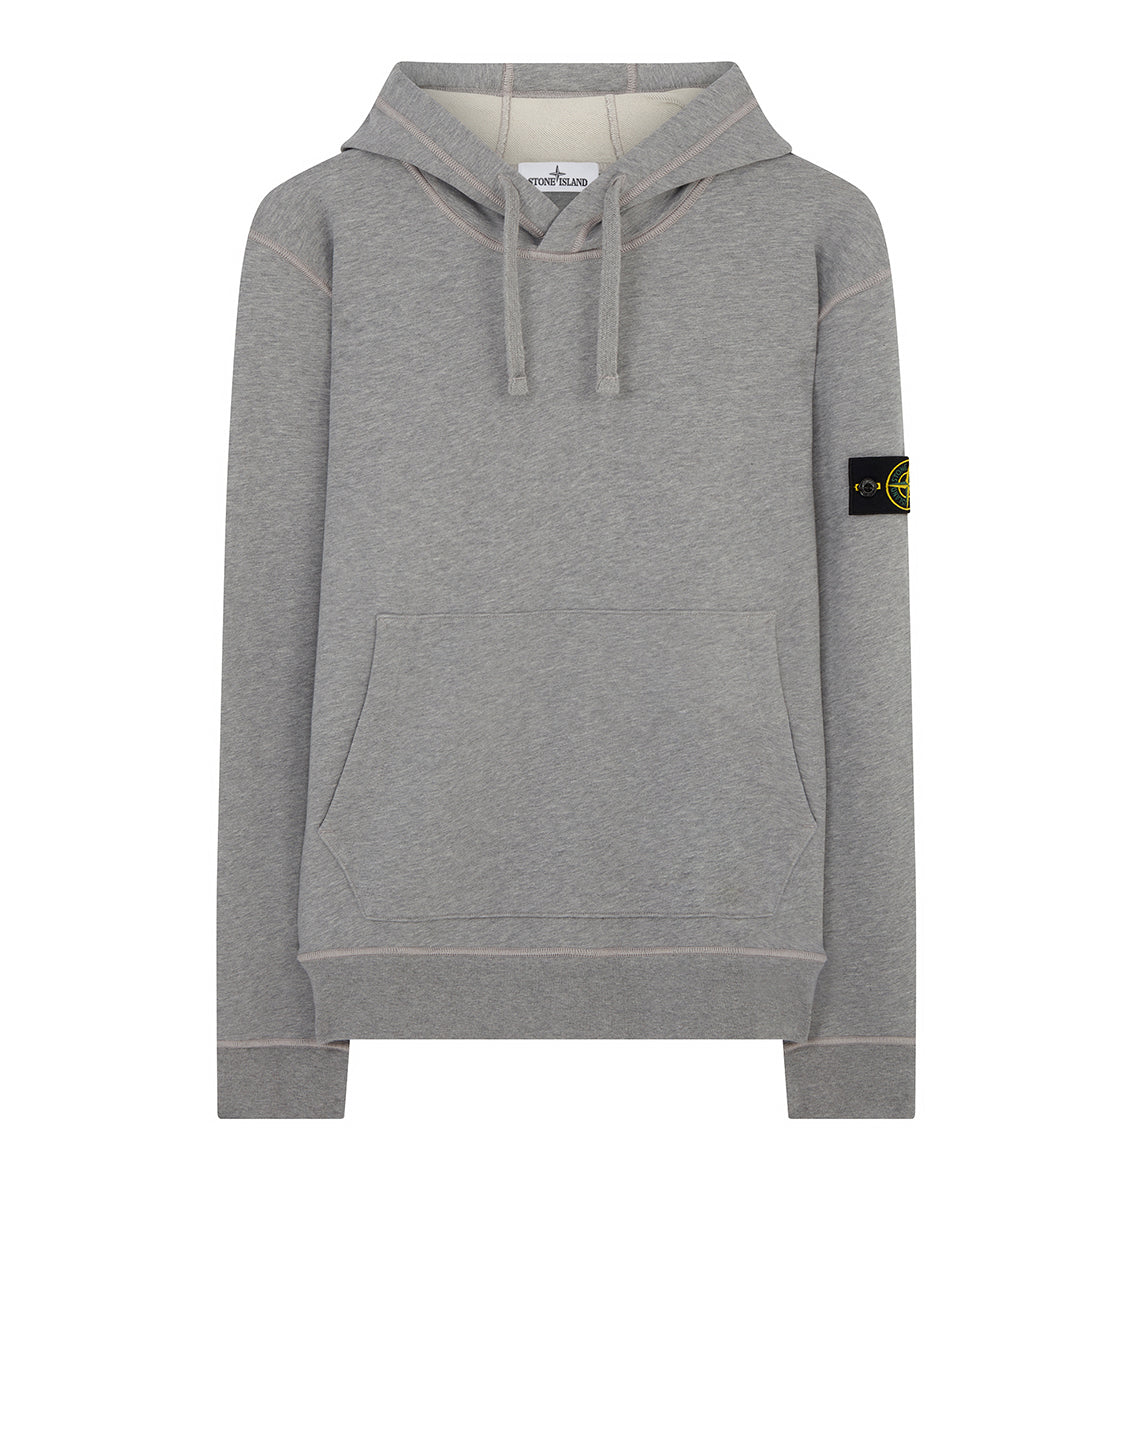 64151 Sweatshirt in Grey Marl